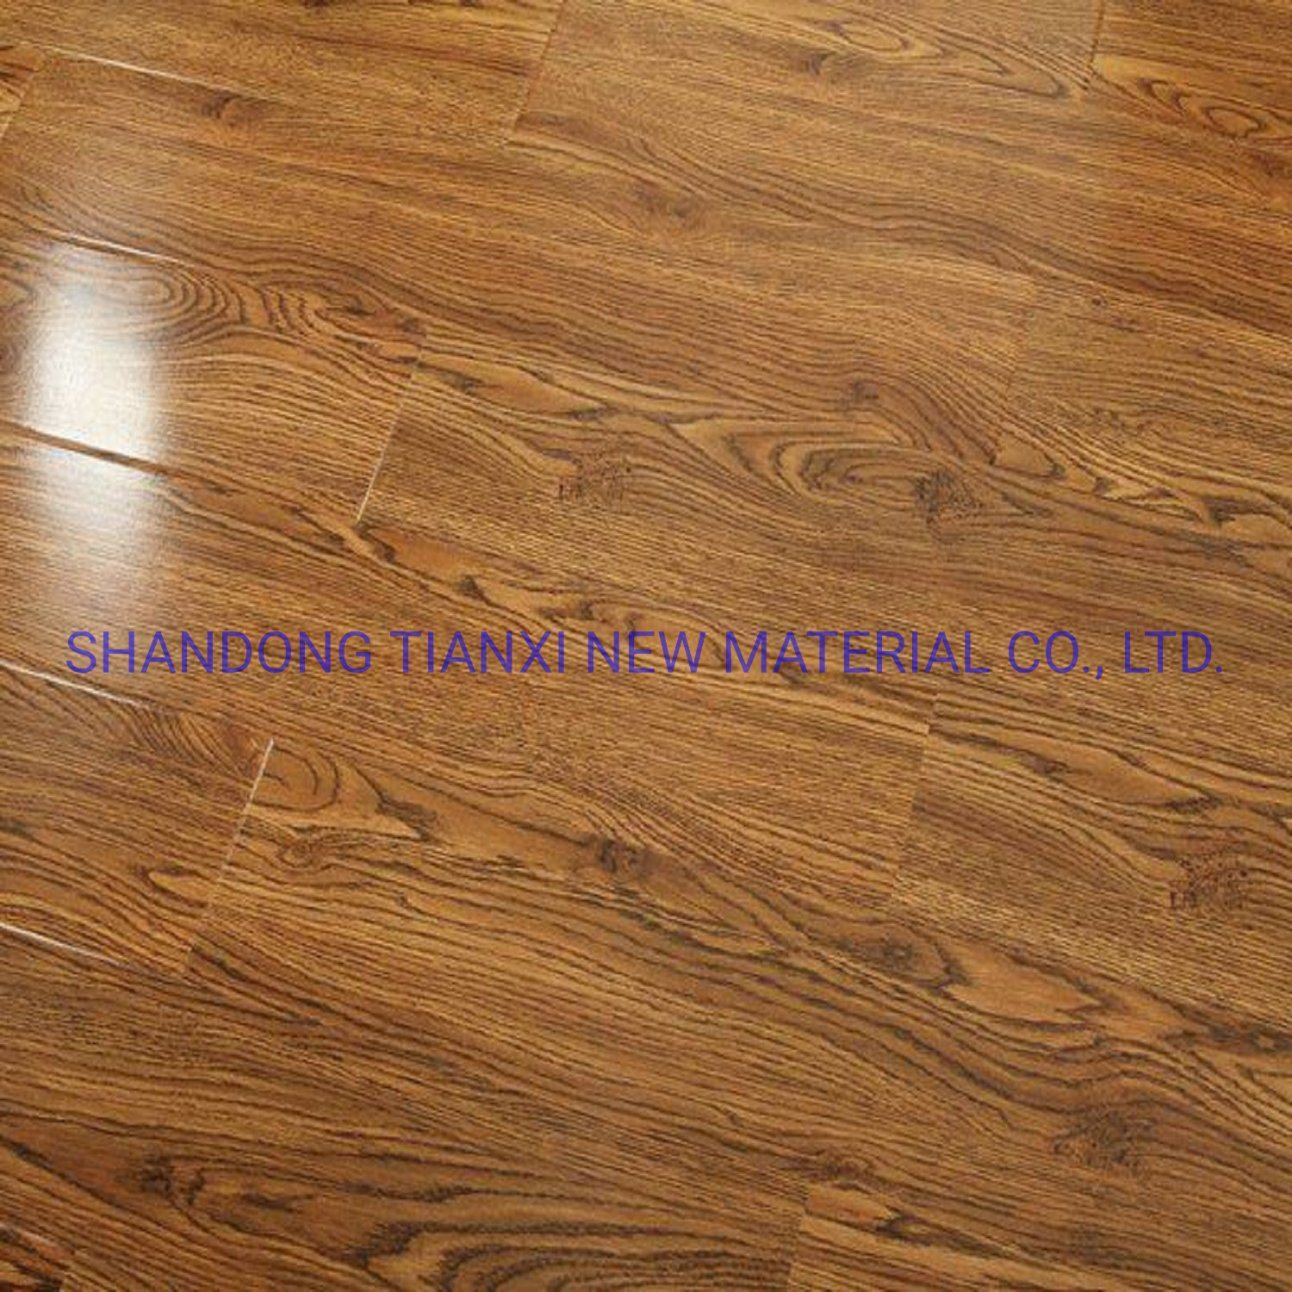 Waxed Edges HDF Wooden Laminated Flooring China Factory Export pictures & photos